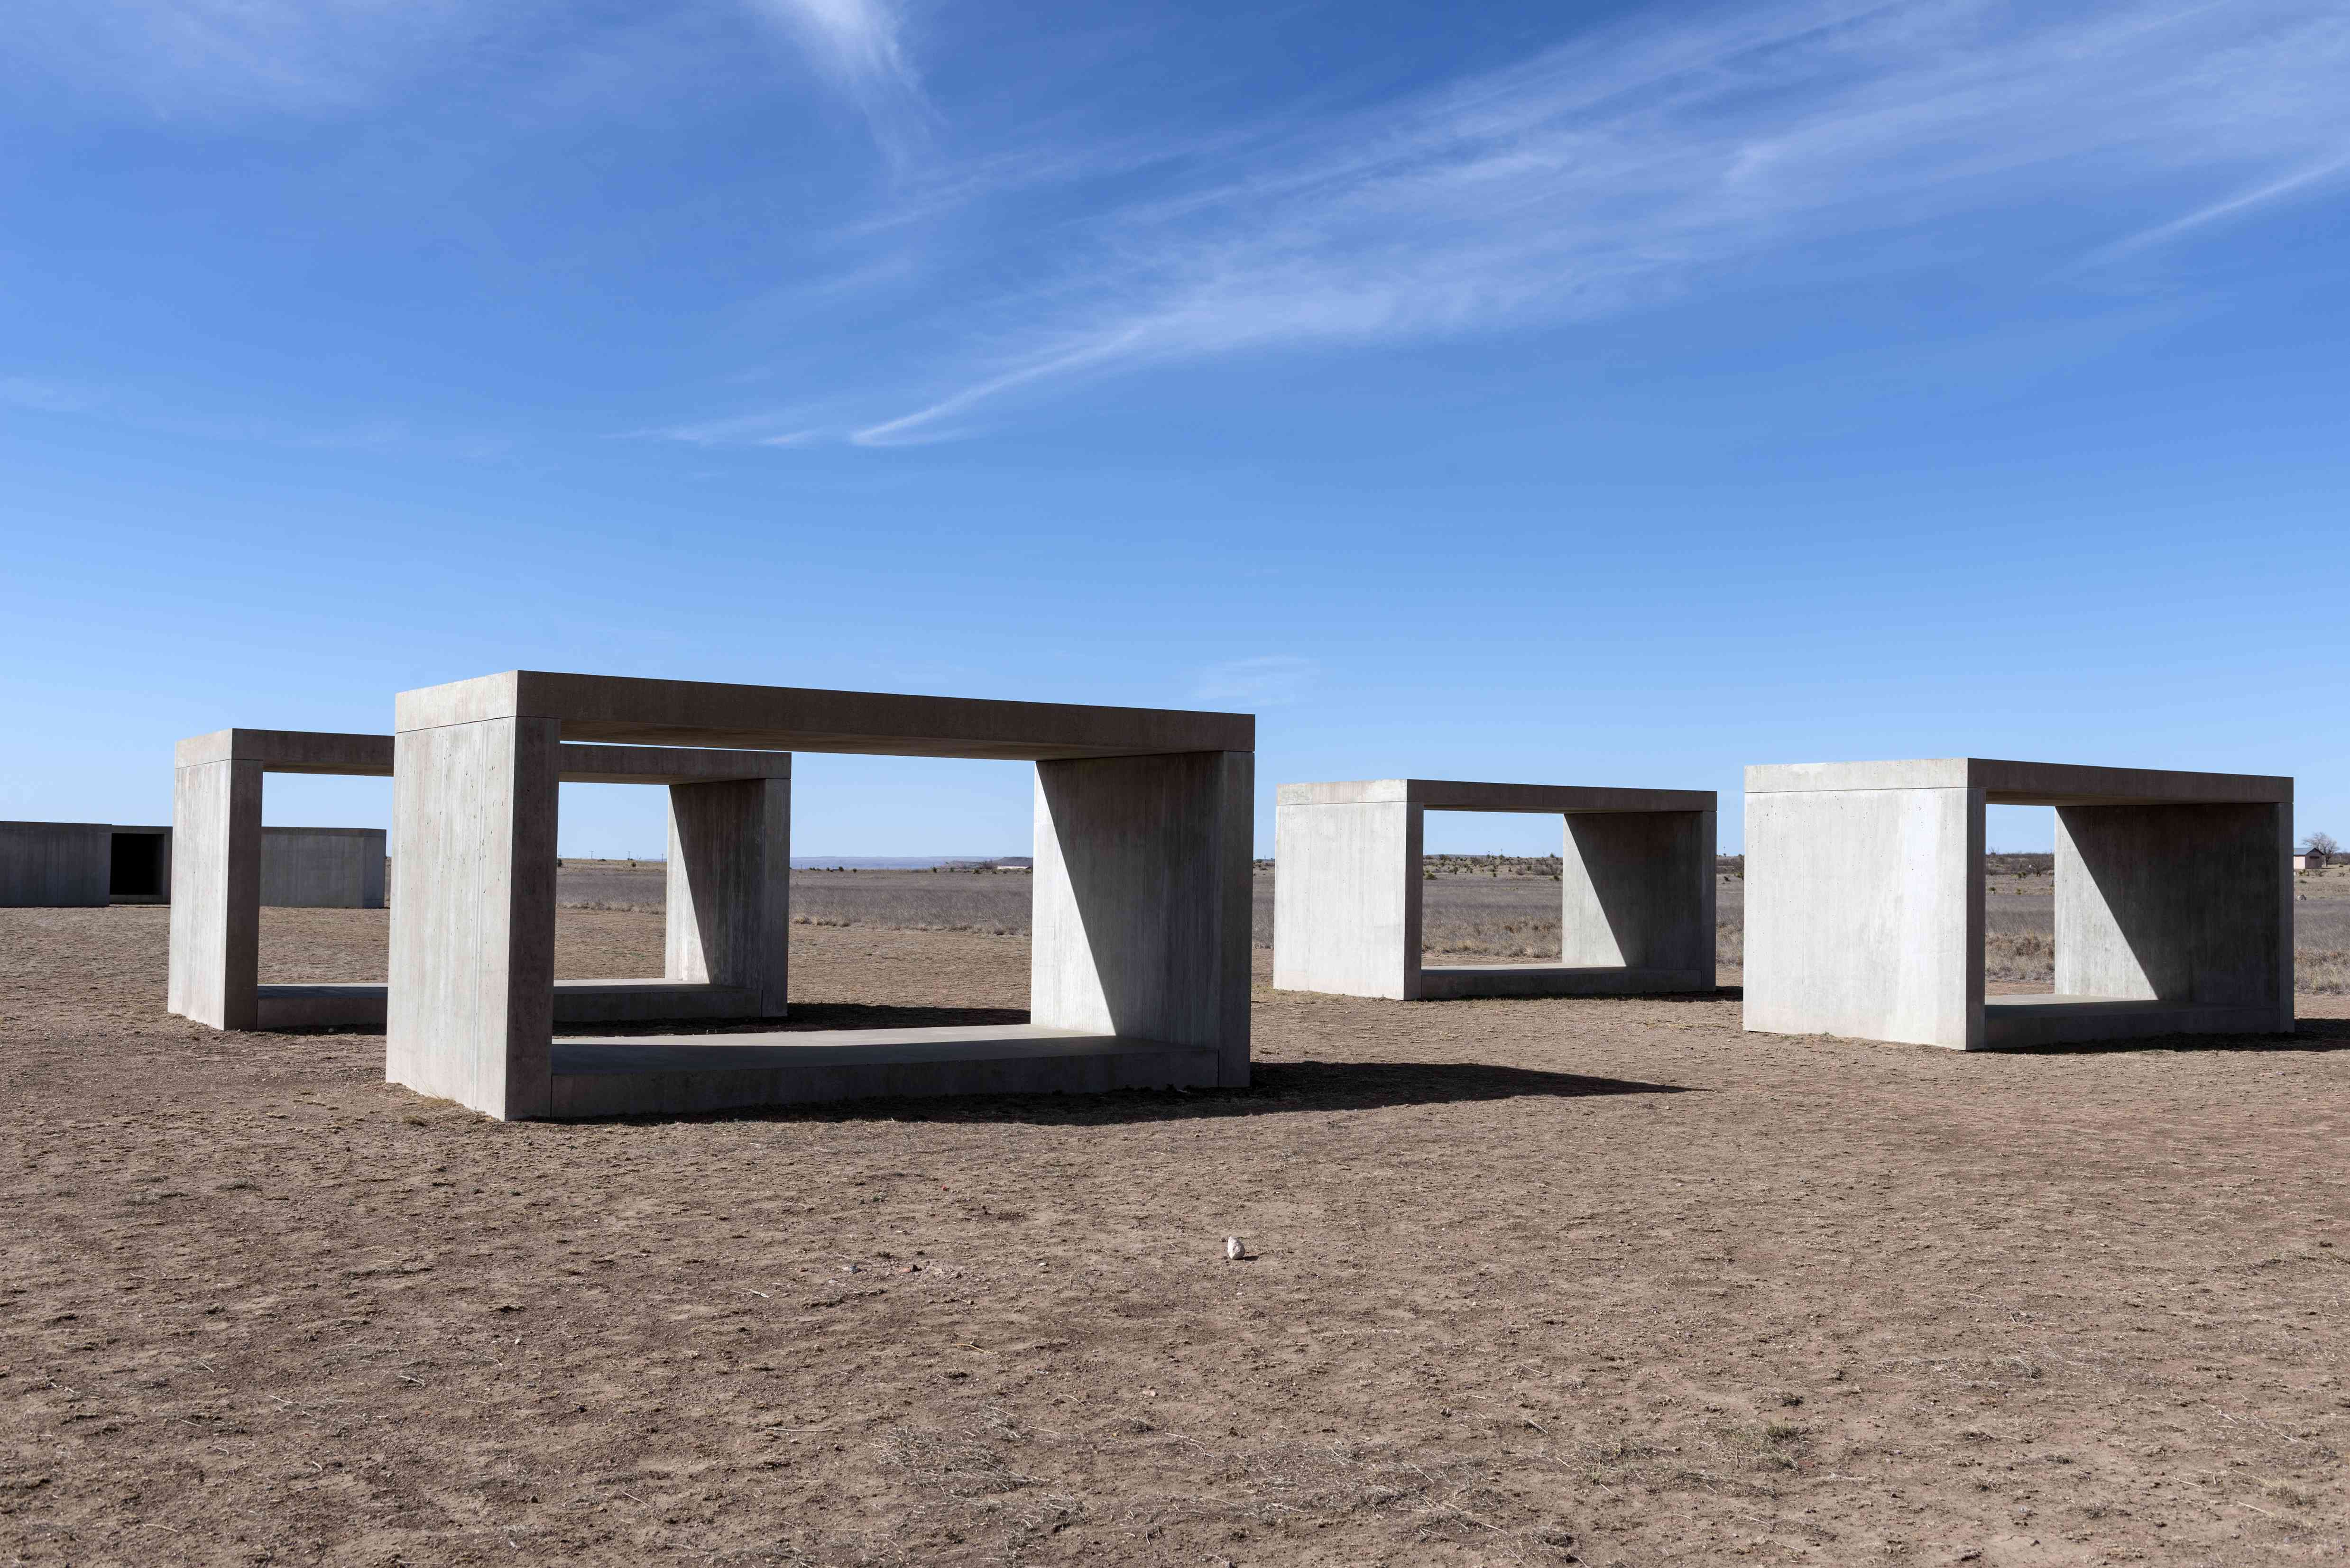 Untitled box-like art, sometimes called Judd cubes, by Minimalist artist Donald Judd, though he dete